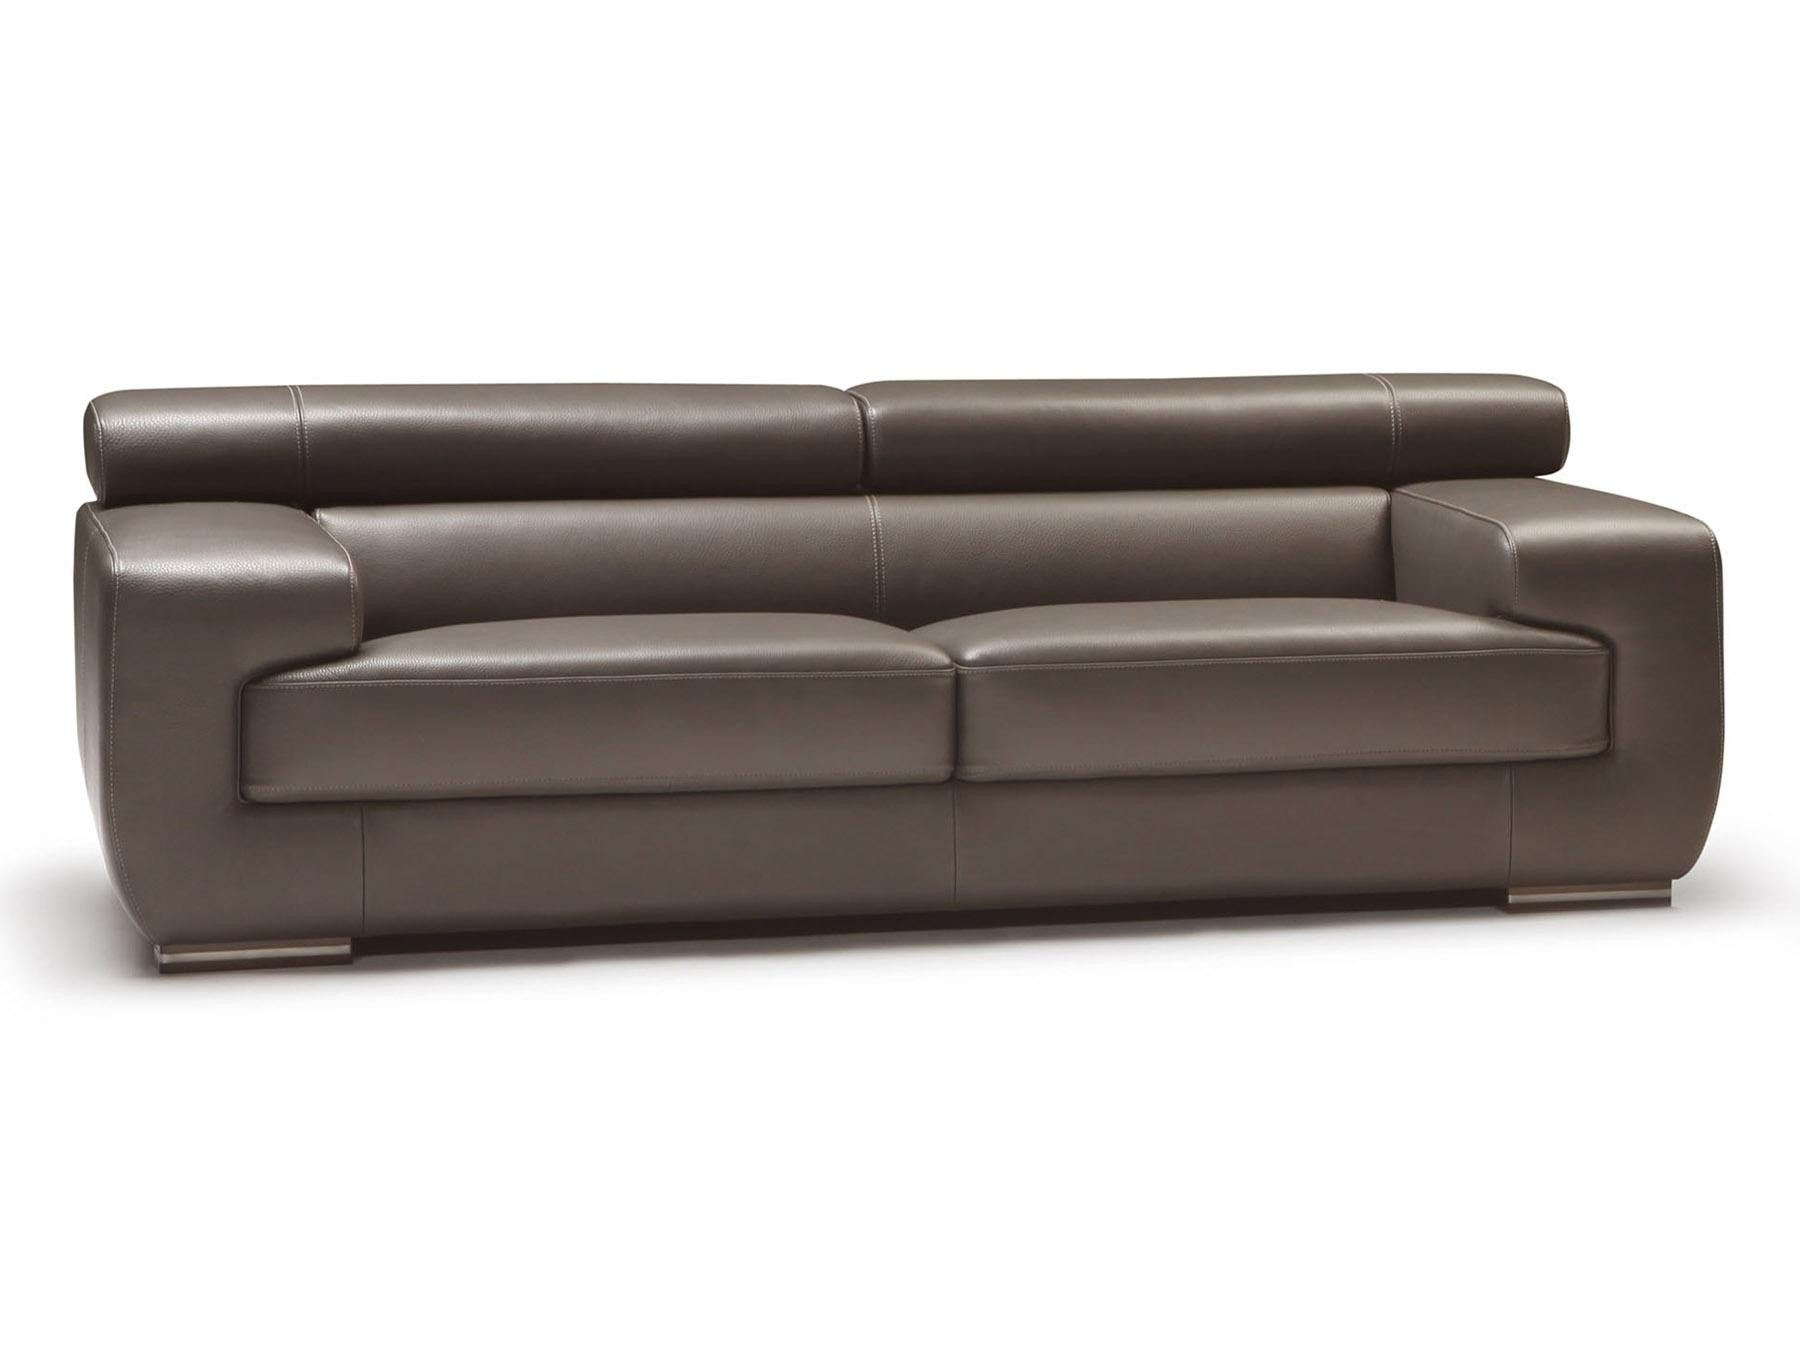 Nicoletti Grace Sofa 100 Full Italian Leather Instock In